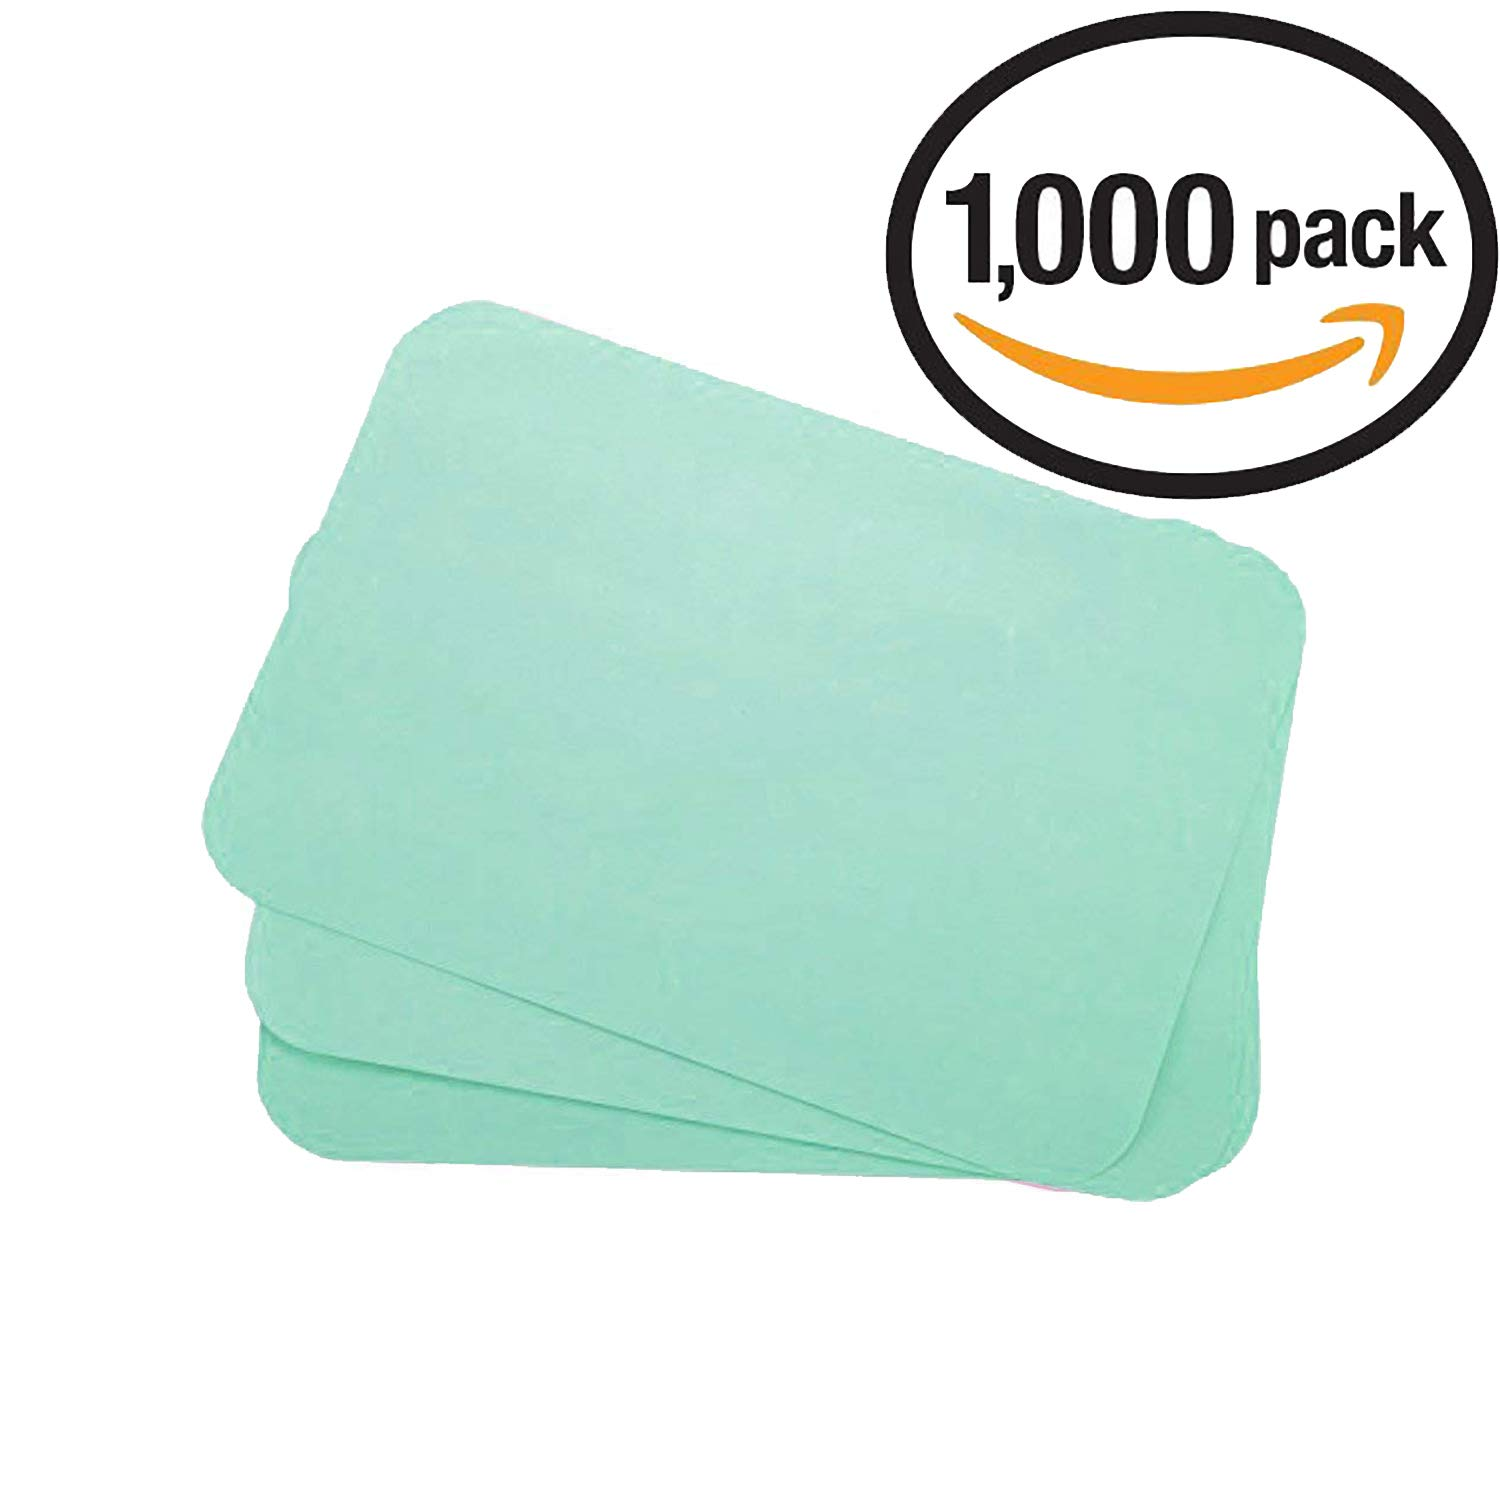 Dental Tray Covers Paper - Size B Tray 8.5''x12.25'' Premium Tray Paper Also Great for Beauty Tray, Pack of 1000, by Vivid (Green)